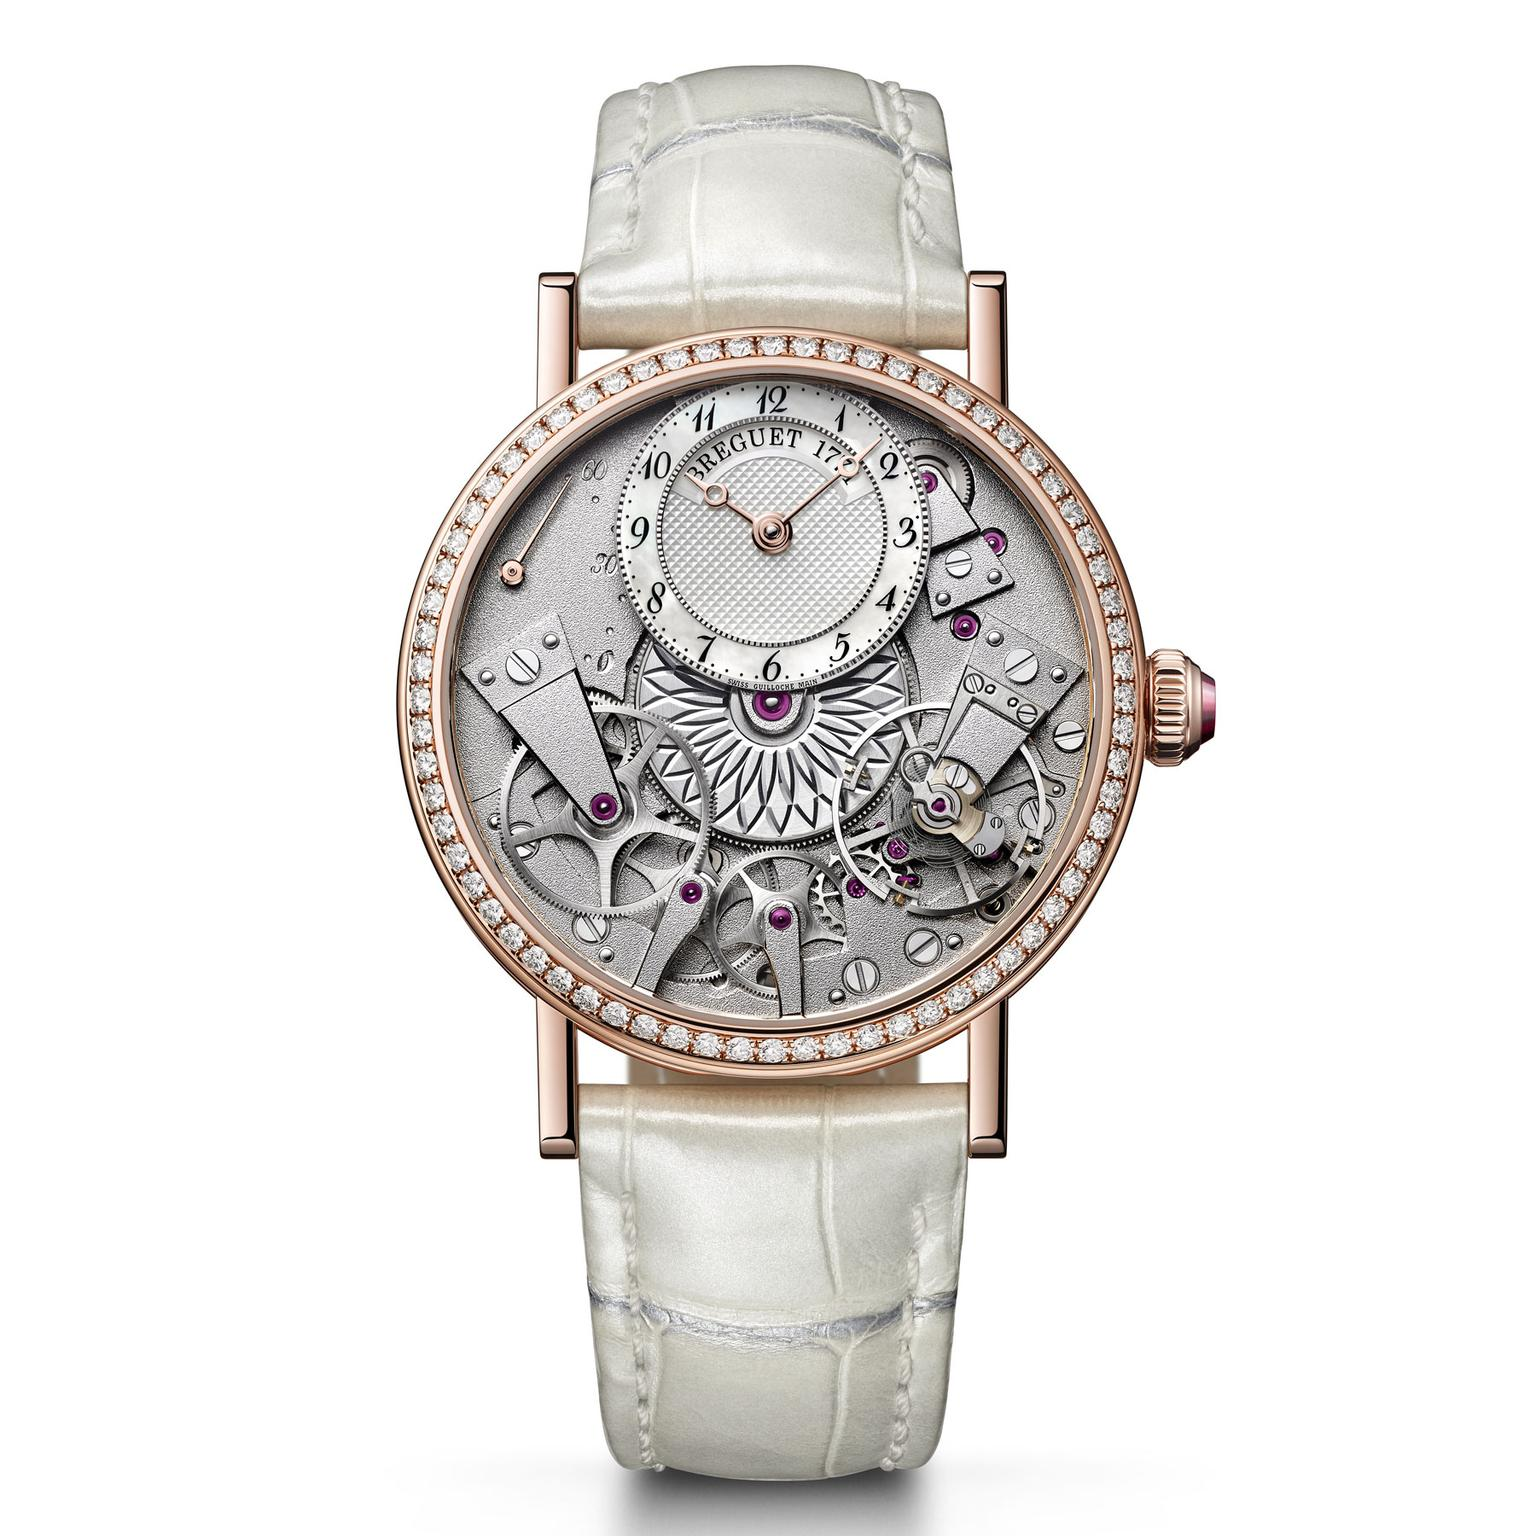 Breguet Tradition Dame 7038 watch